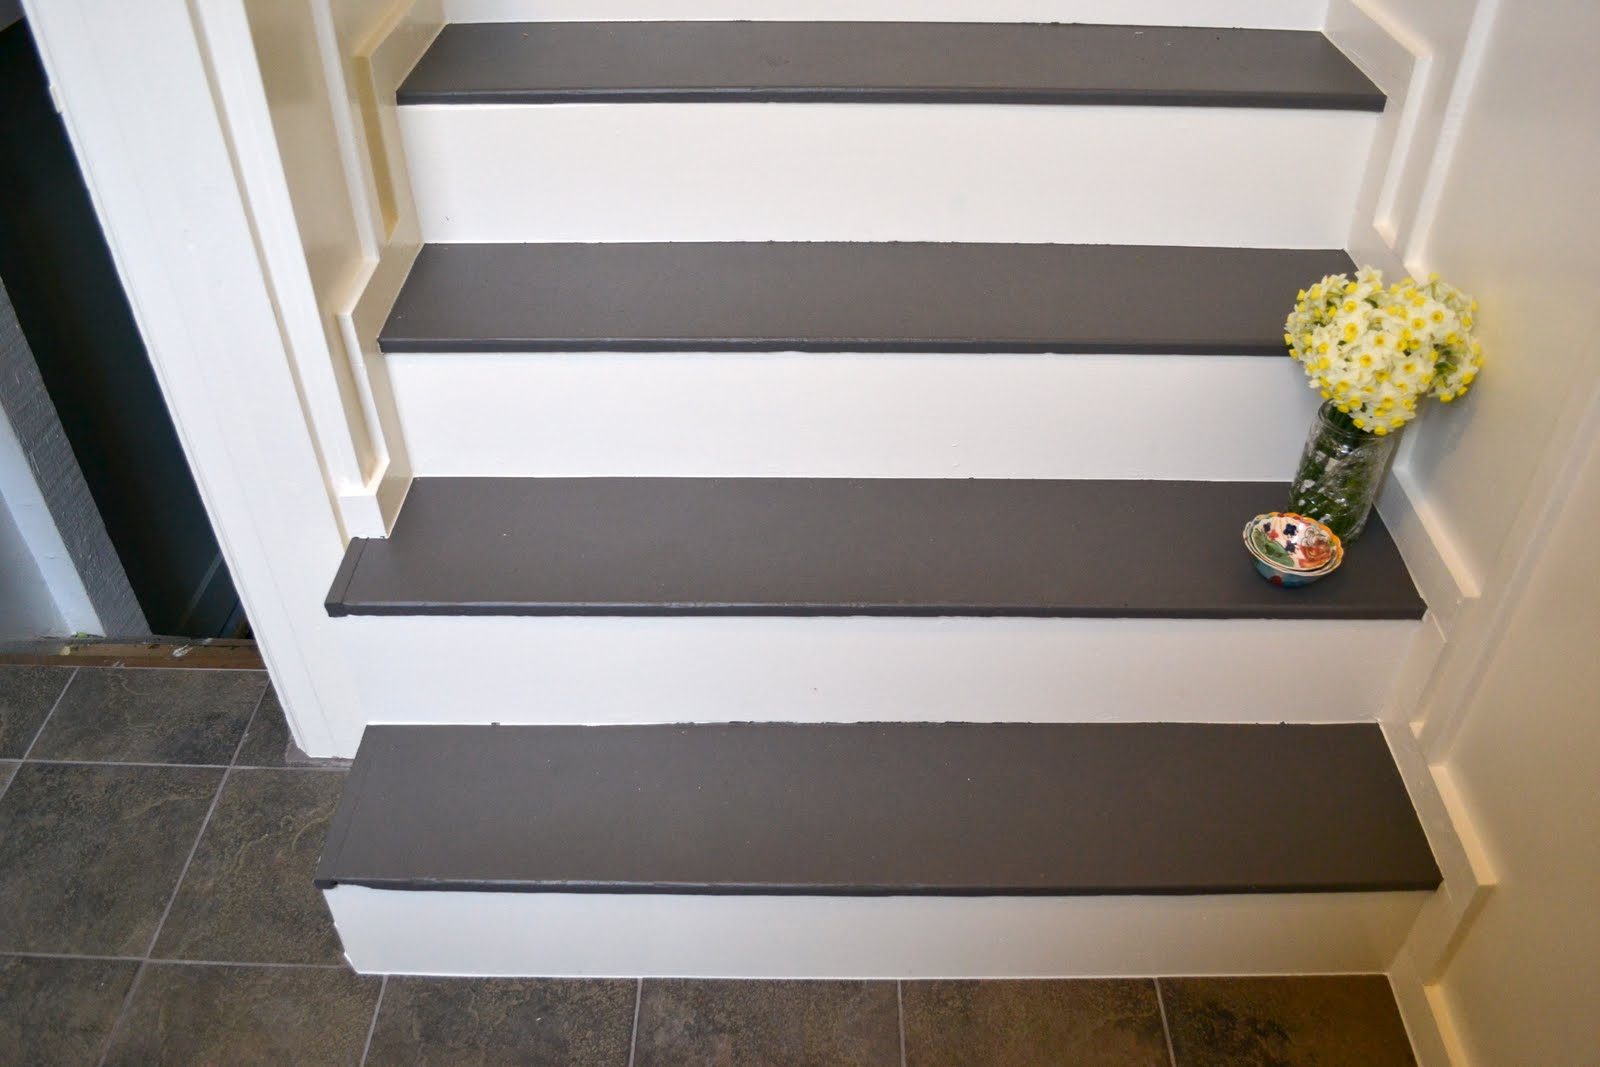 Best Paint For Stairs A Home In The Making Renovate Back Entry Sources A Lesson